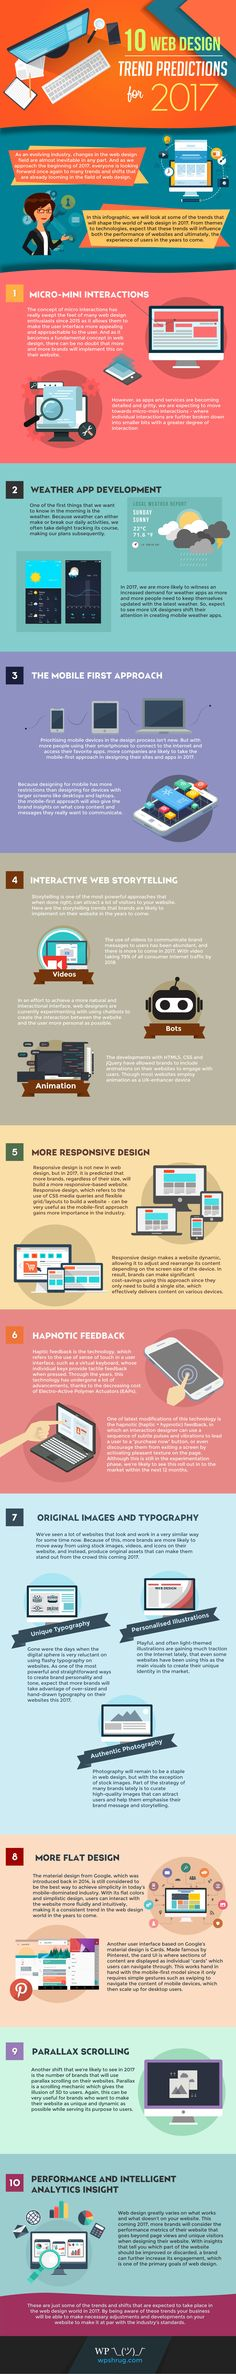 10 Web Design Trend Predictions for 2017 [Infographic]